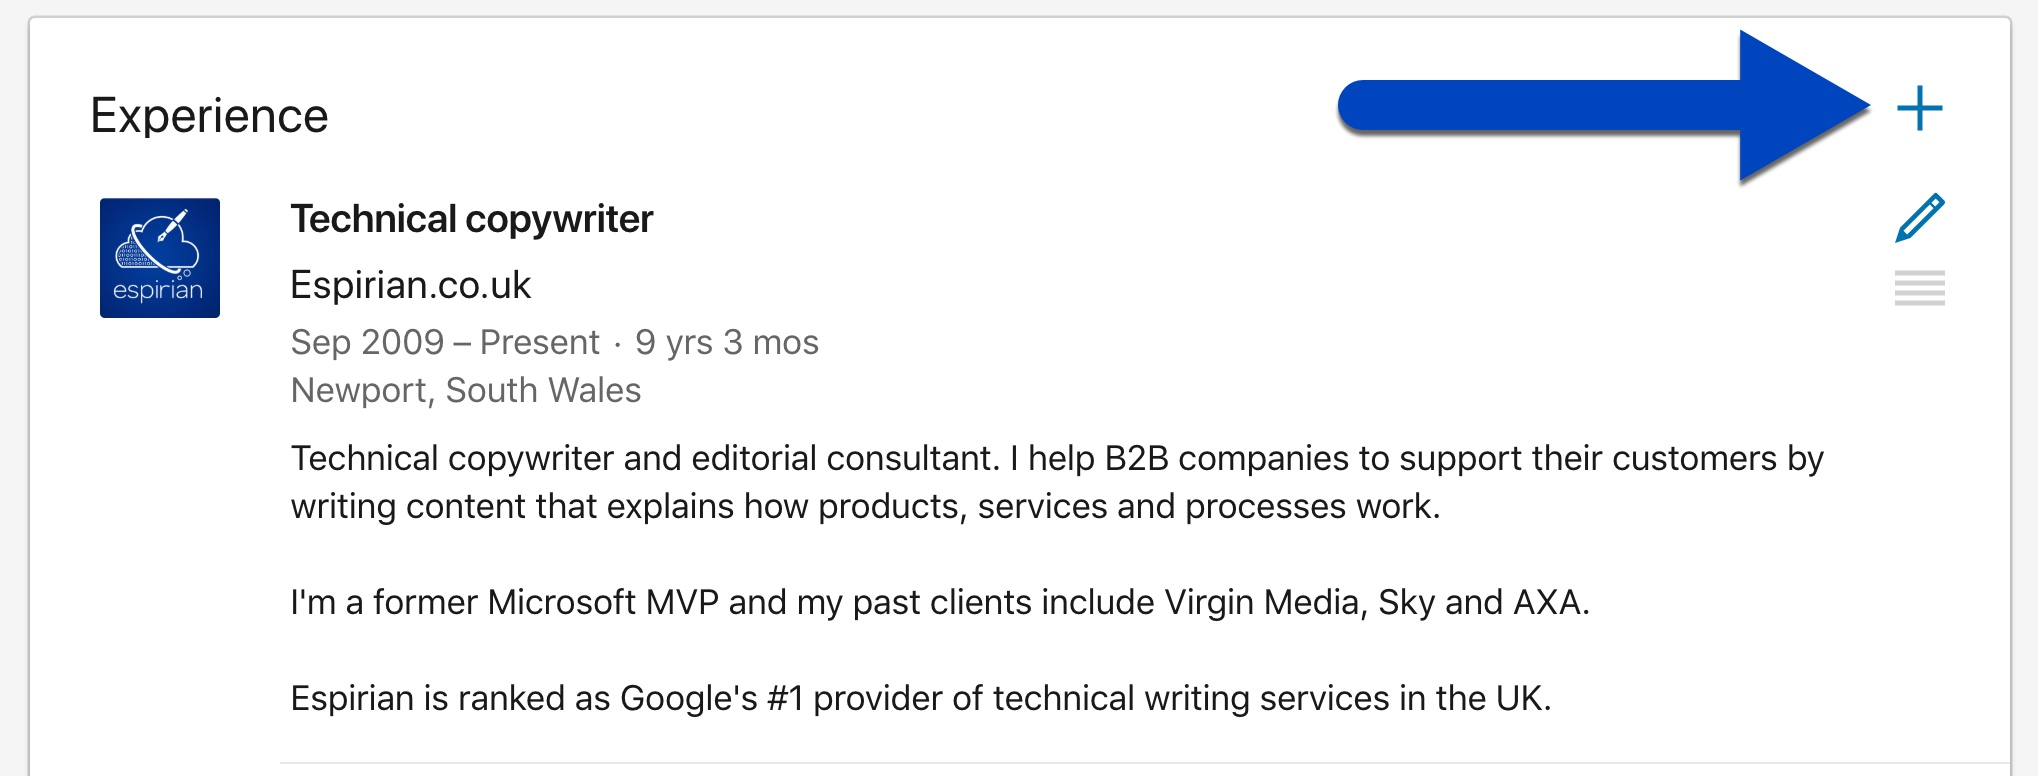 The Experience section of a LinkedIn profile